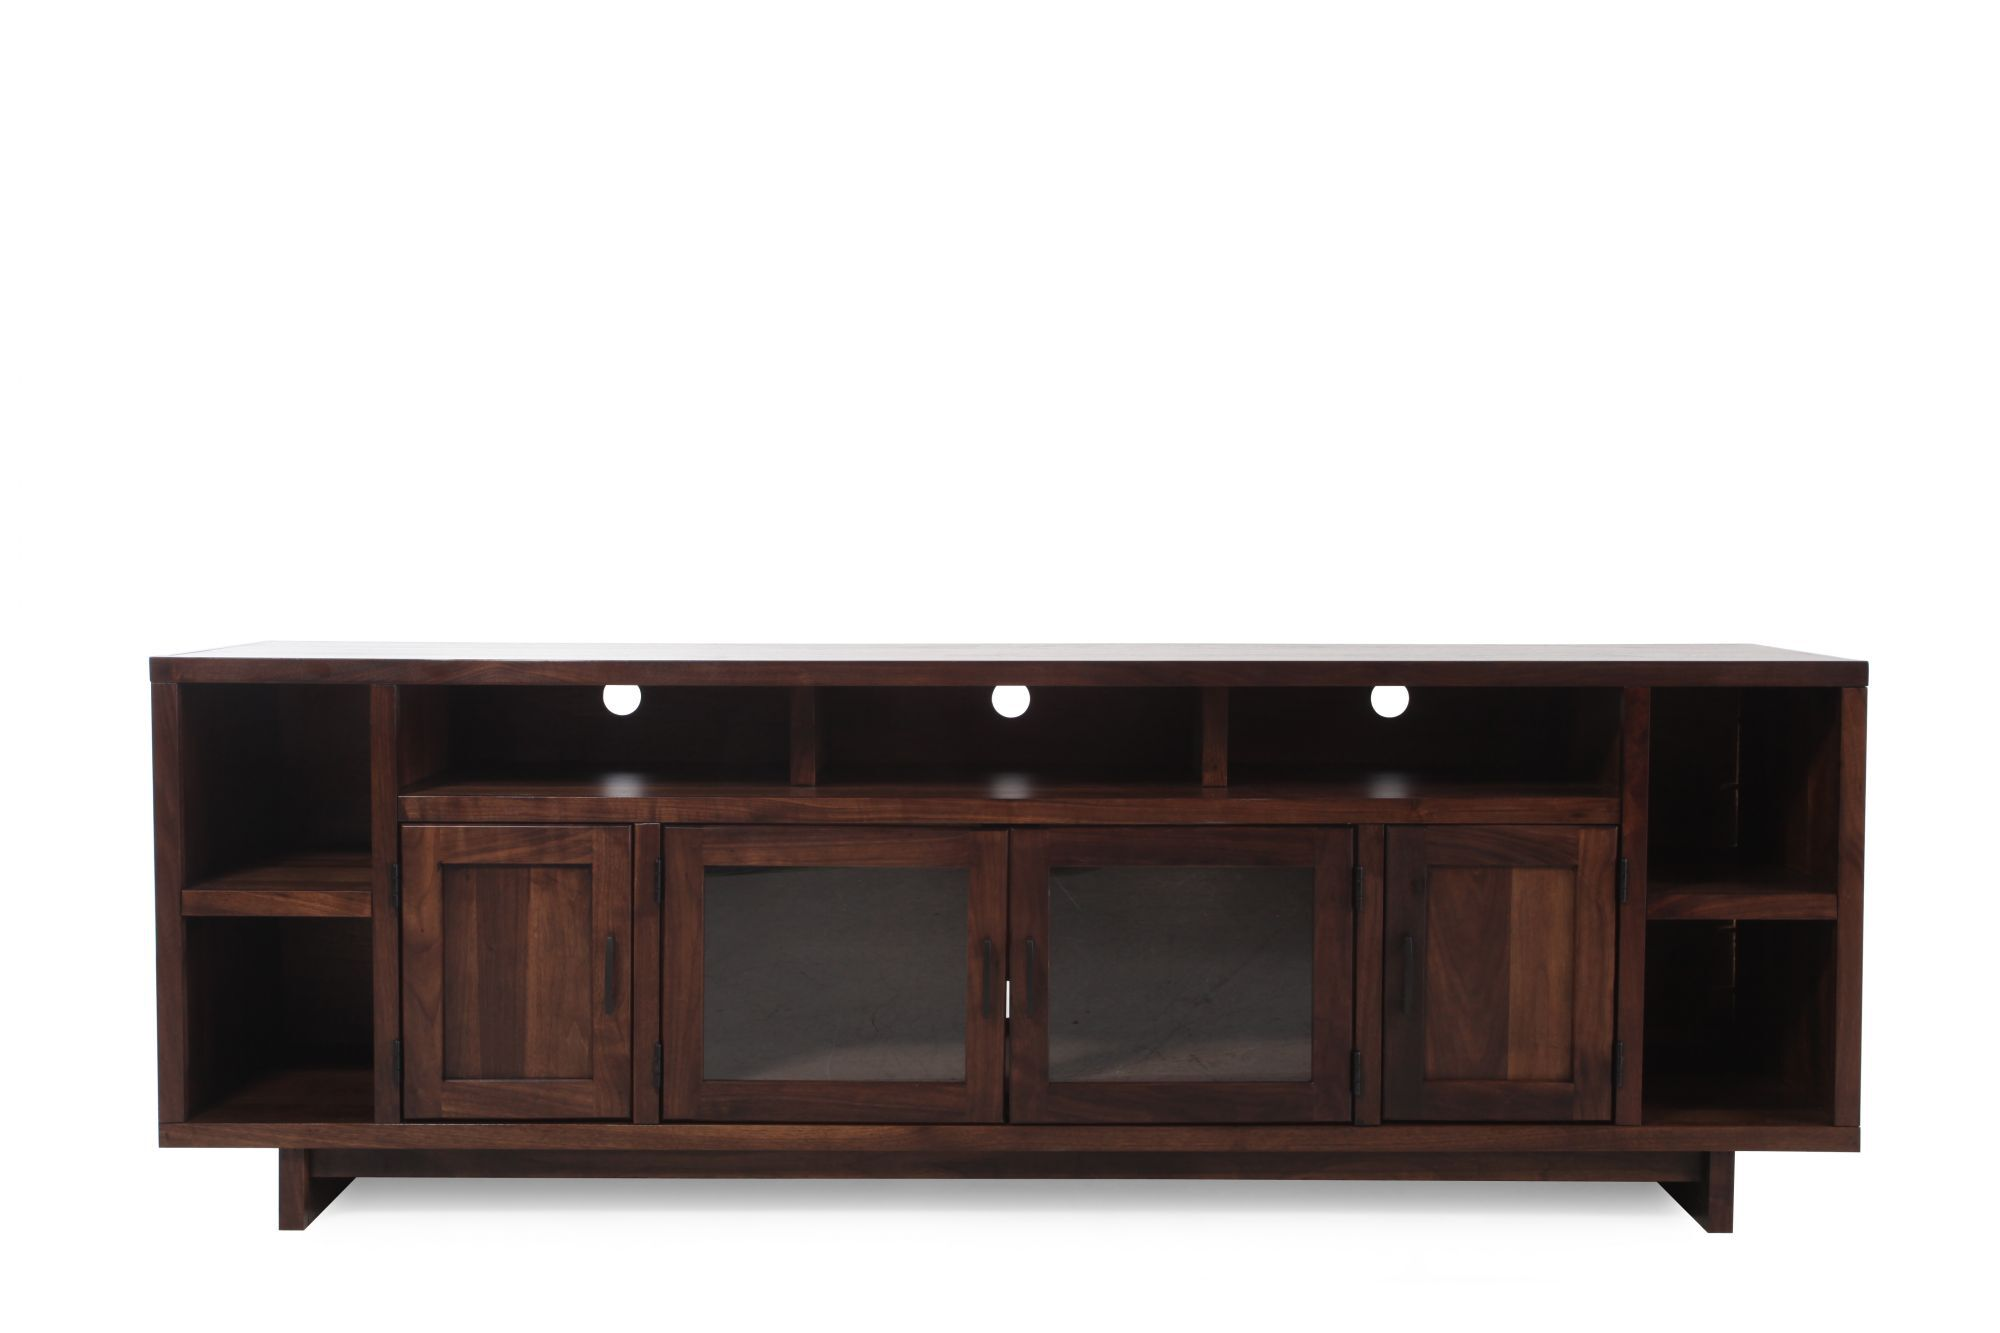 sofa table 84 inches kent motion and loveseat aspen walnut heights inch console mathis brothers